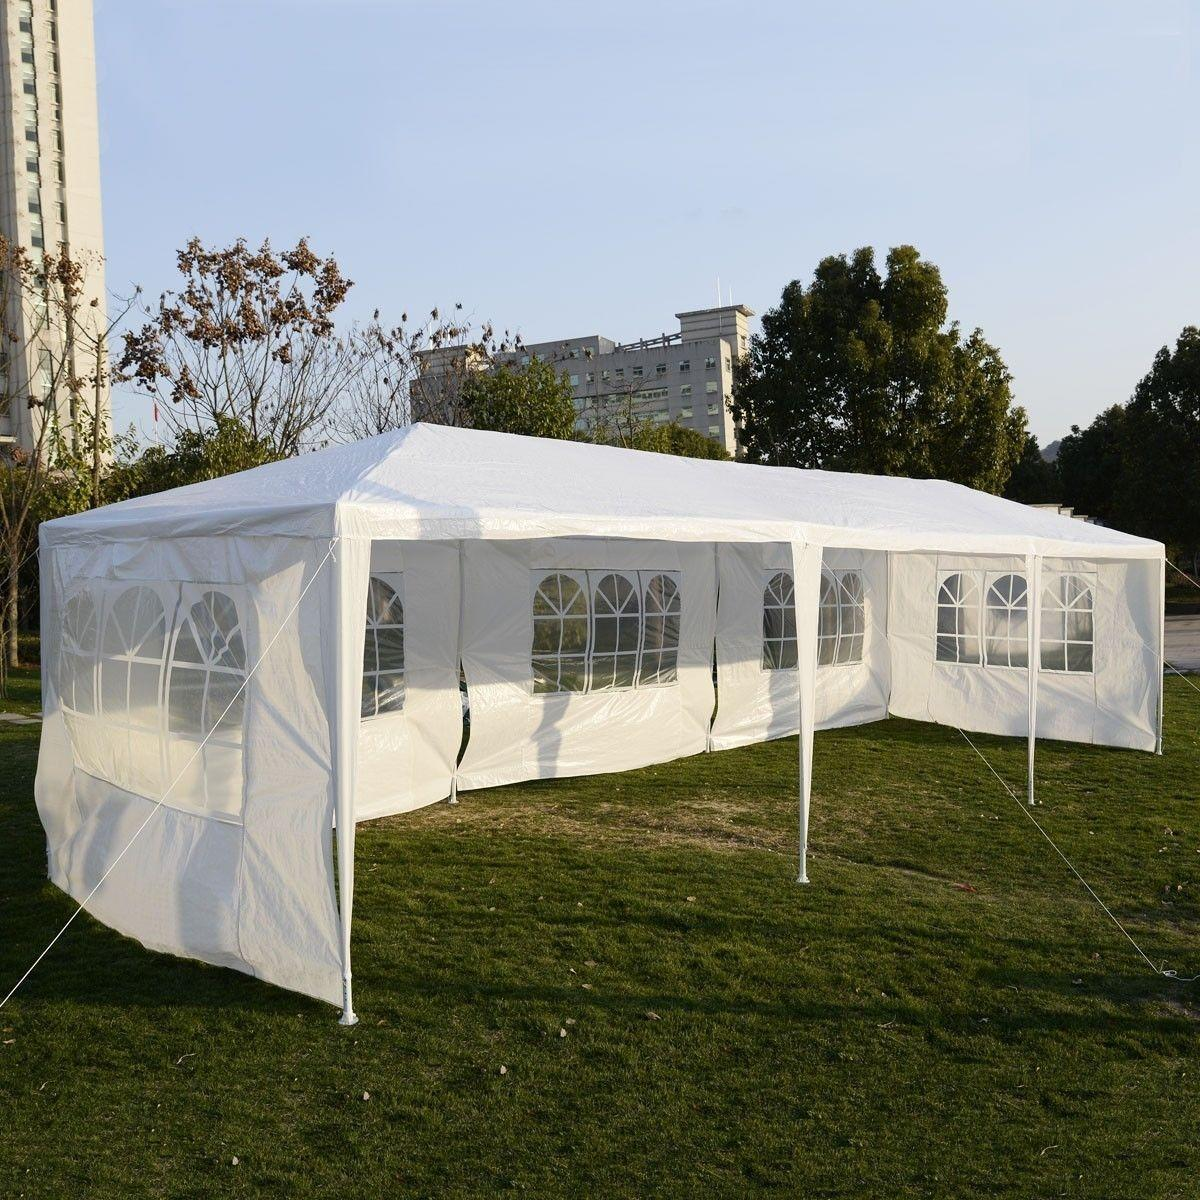 Goplus 10 X30 Party Wedding Tent Outdoor Garden Patio Tent Canopy Heavy Duty White Gazebo Pavilion Event AP2065WHGoplus 10 X30 Party Wedding Tent Outdoor Garden Patio Tent Canopy Heavy Duty White Gazebo Pavilion Event AP2065WH